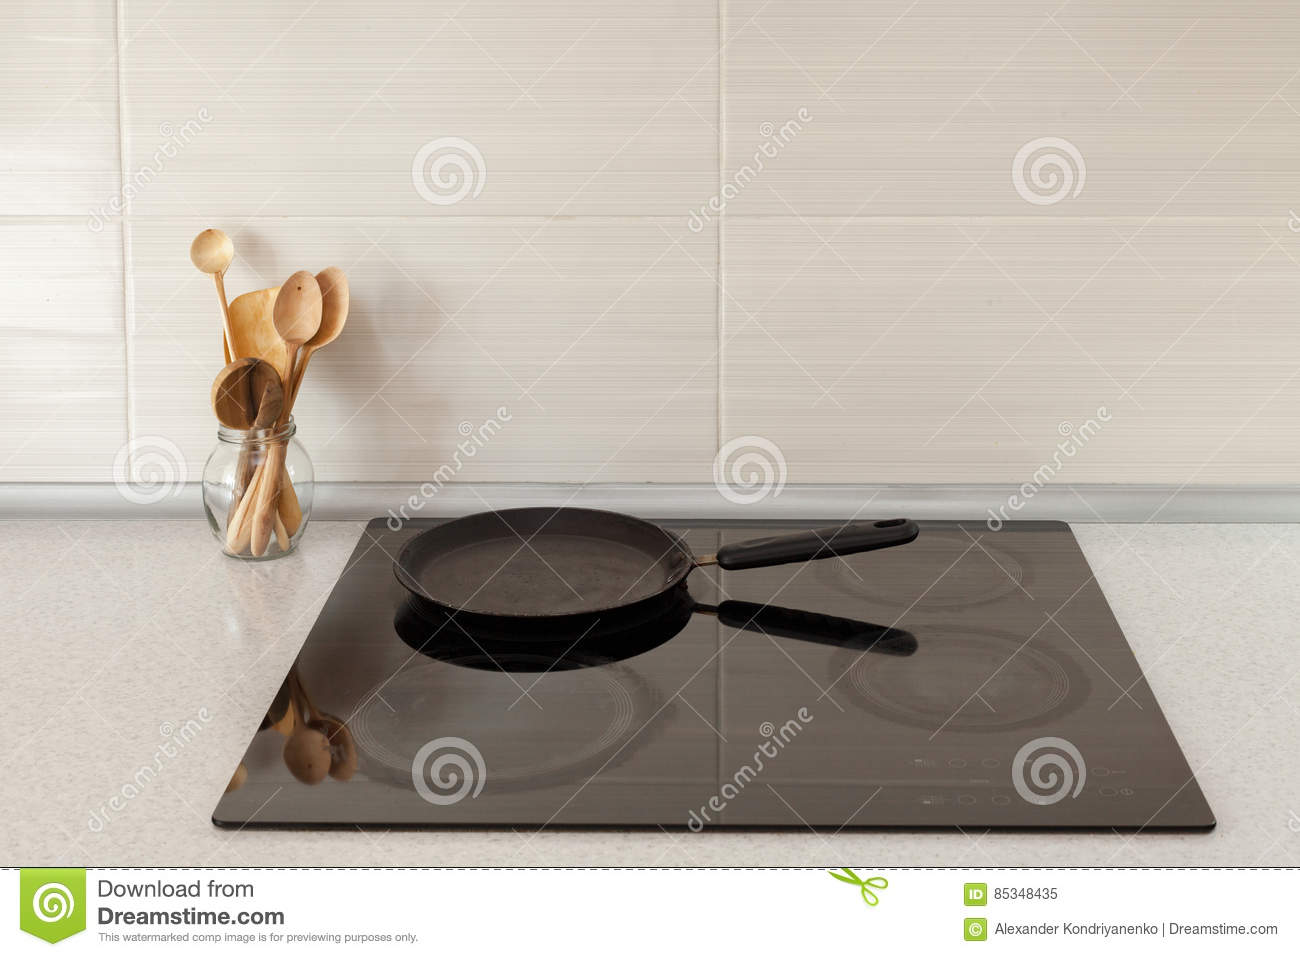 Cuisine Induction Closeup Of Pot And Wooden Spoons In Modern Kitchen With Induction